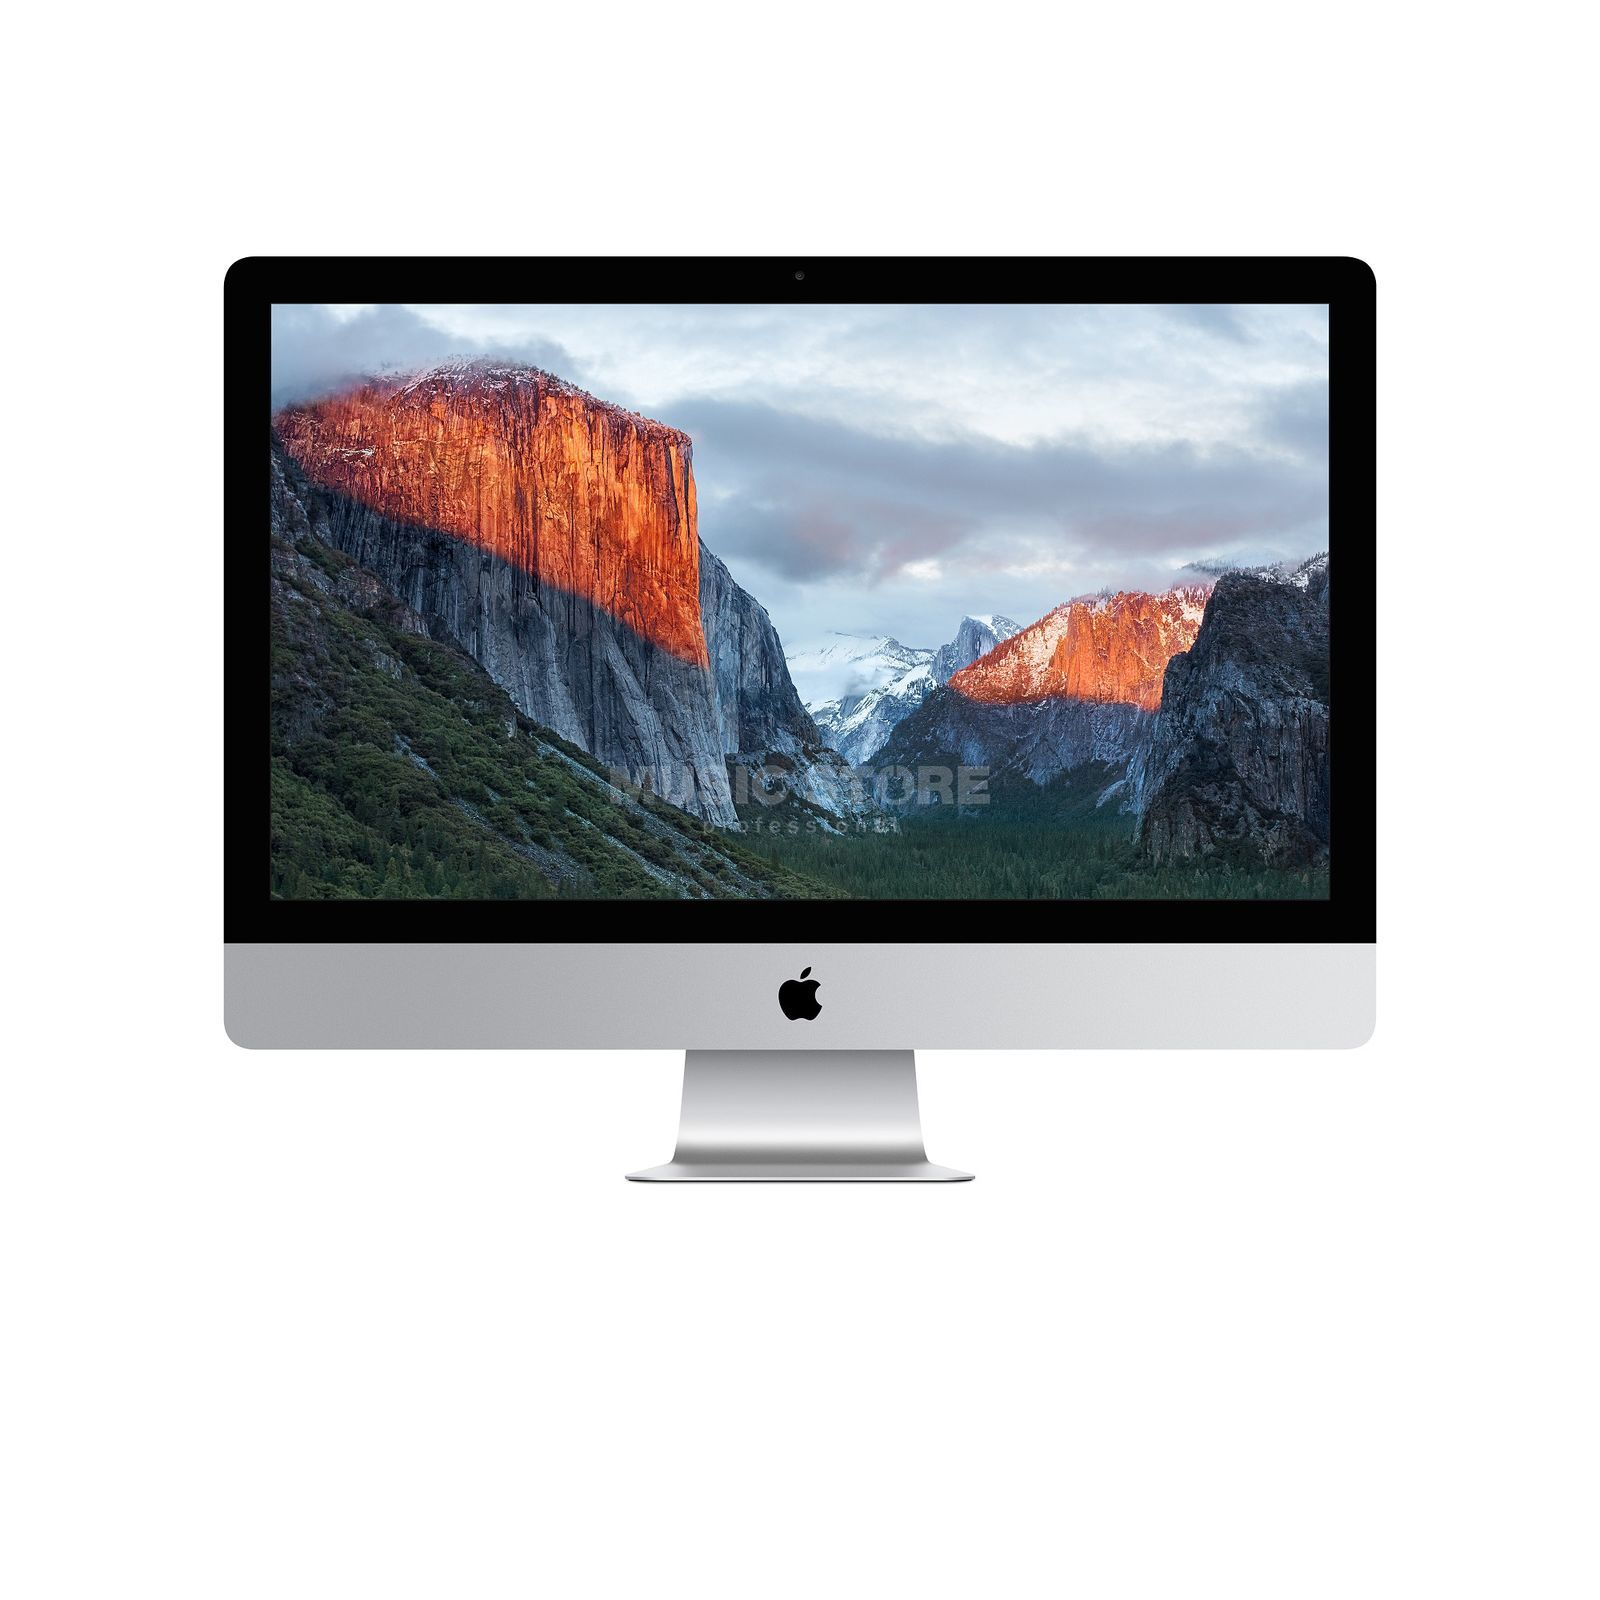 "Apple iMac 27"" 5K 3,2 GHz i5 Int. 8GB RAM, 1TB, AMD Radeon R9 Produktbild"